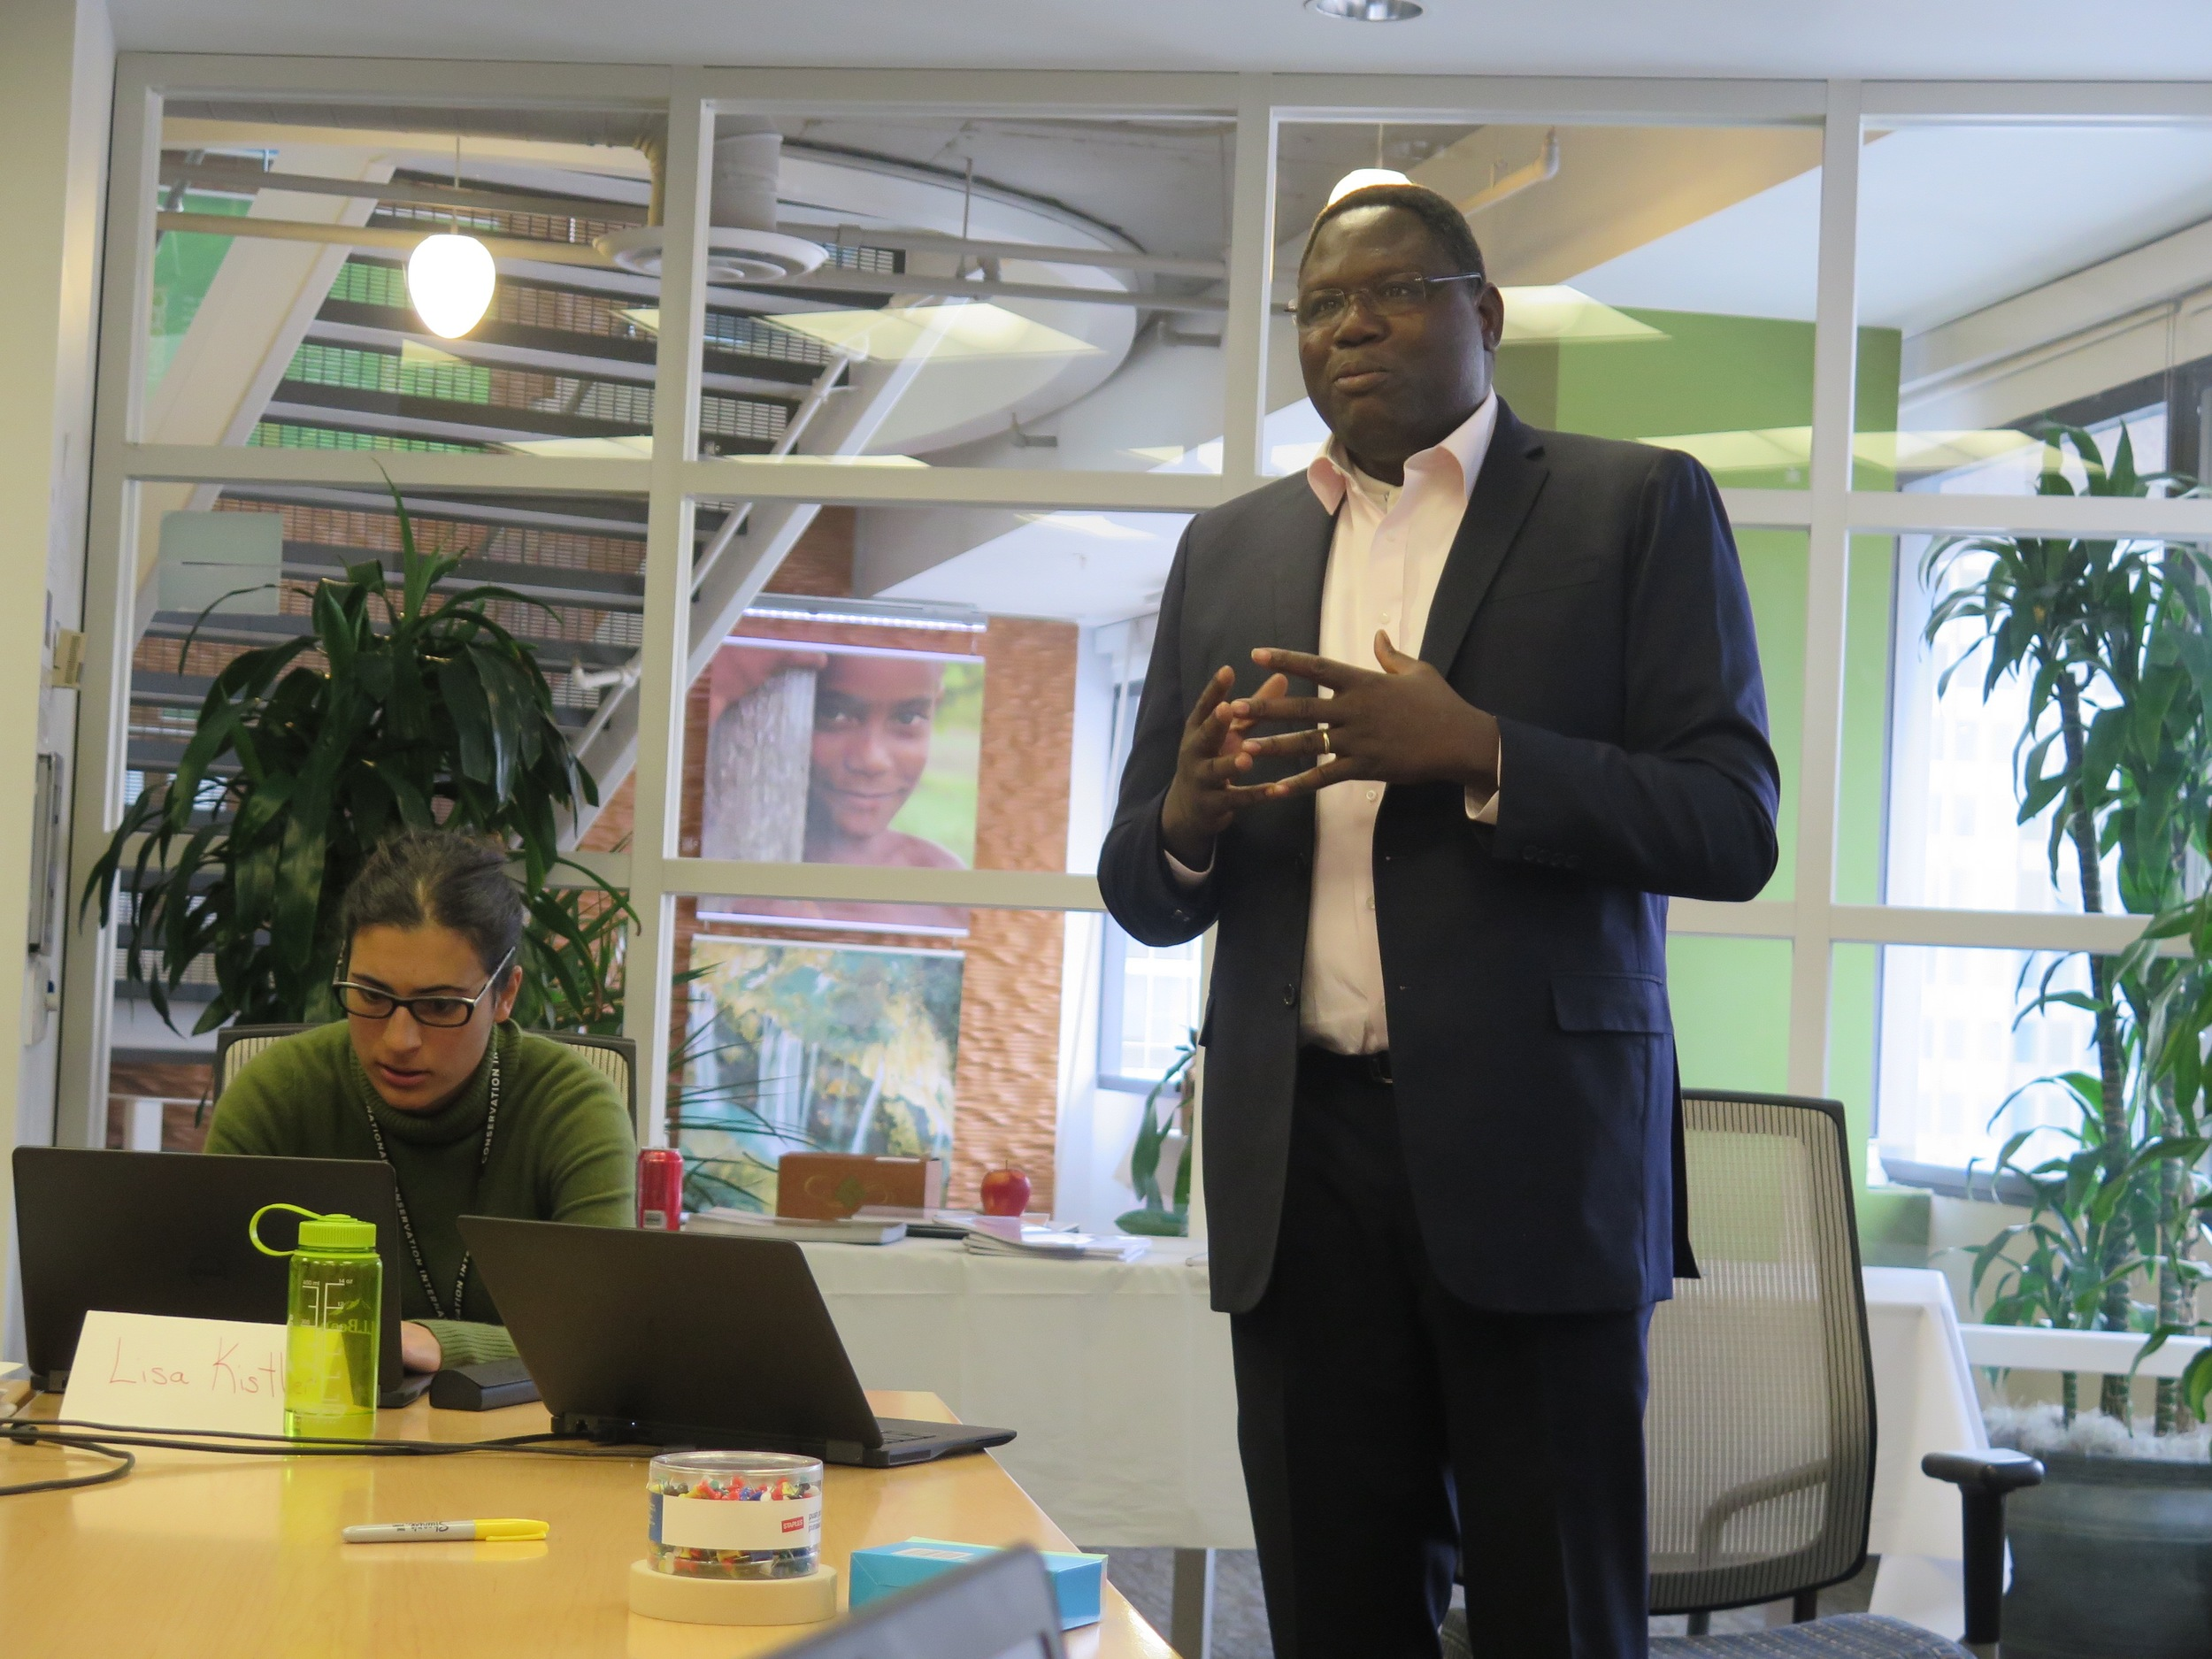 Moumini Savadogo (Burkina Faso) speaks at the DGM Planning and Coordination meeting on Tuesday.